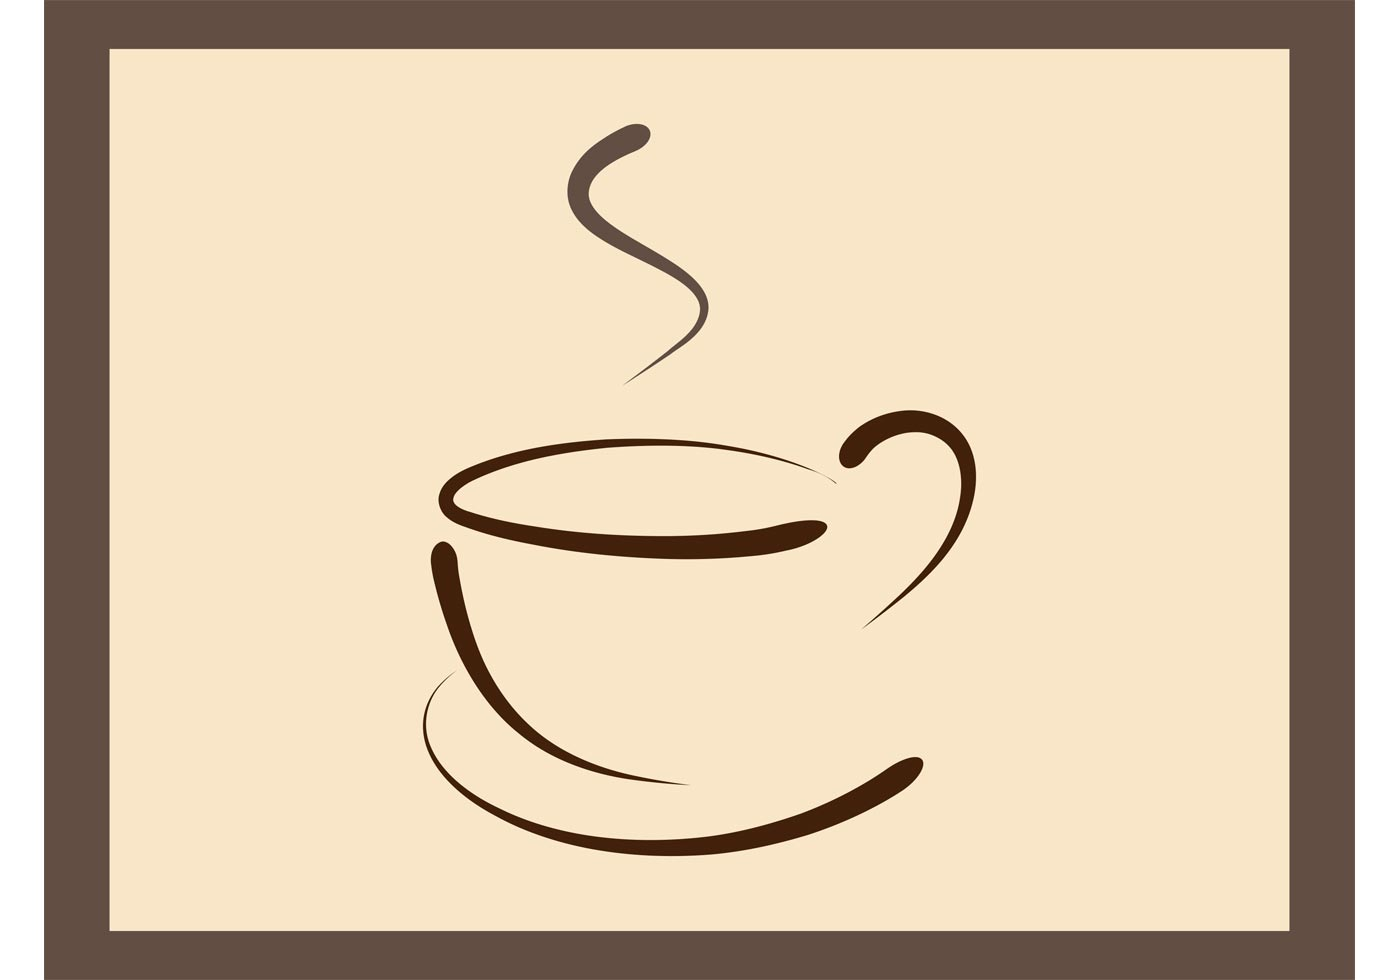 Coffee Cup Free Vector Art - (6,416 Free Downloads)